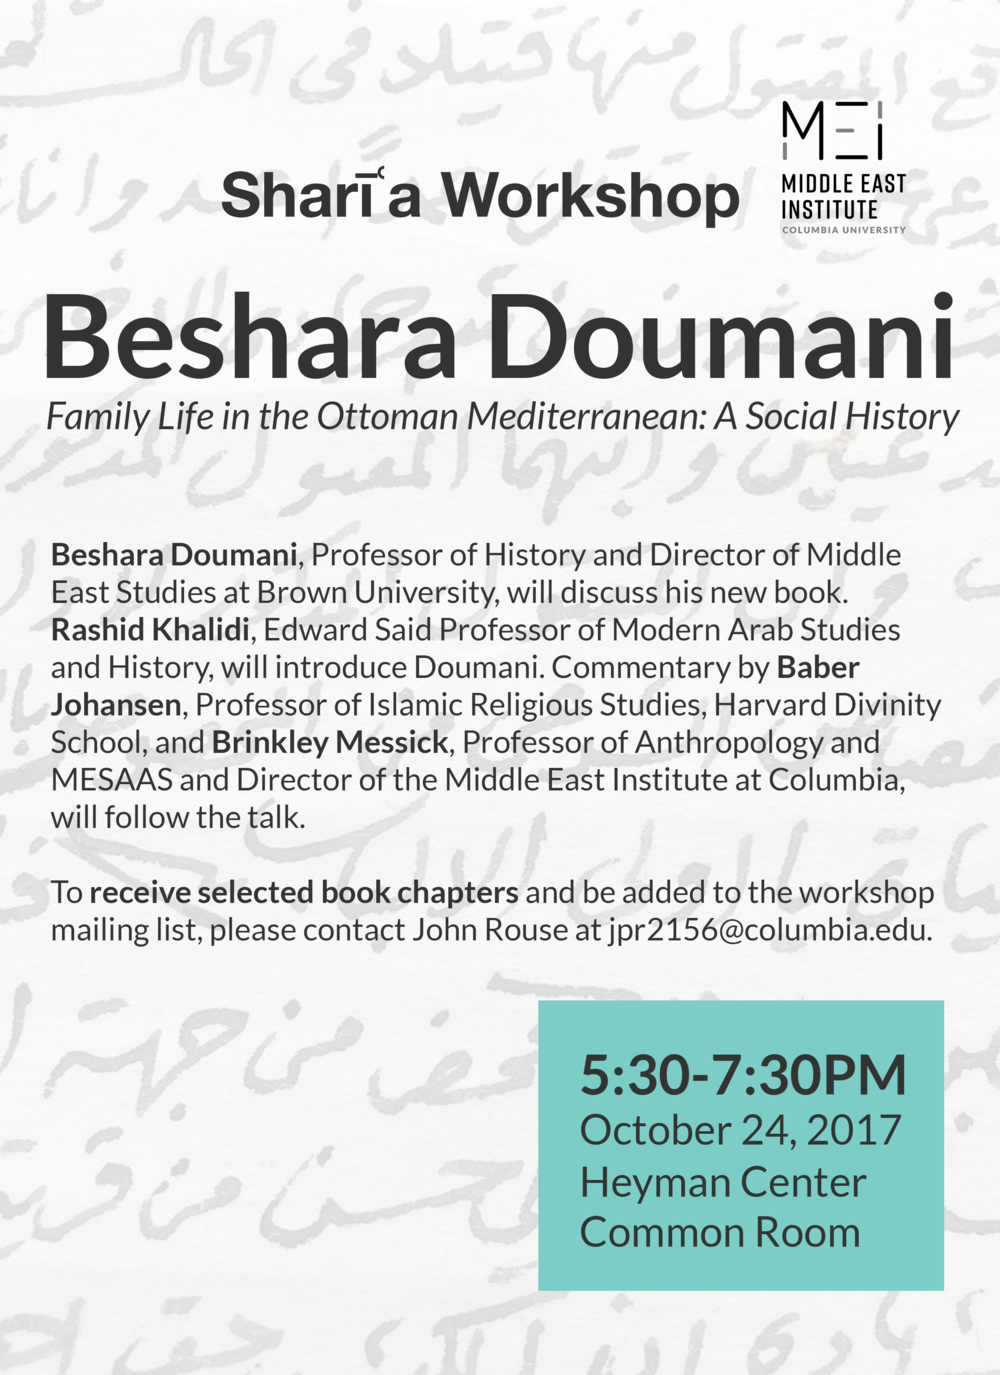 beshara_doumani_sharia_workshop_edit.png